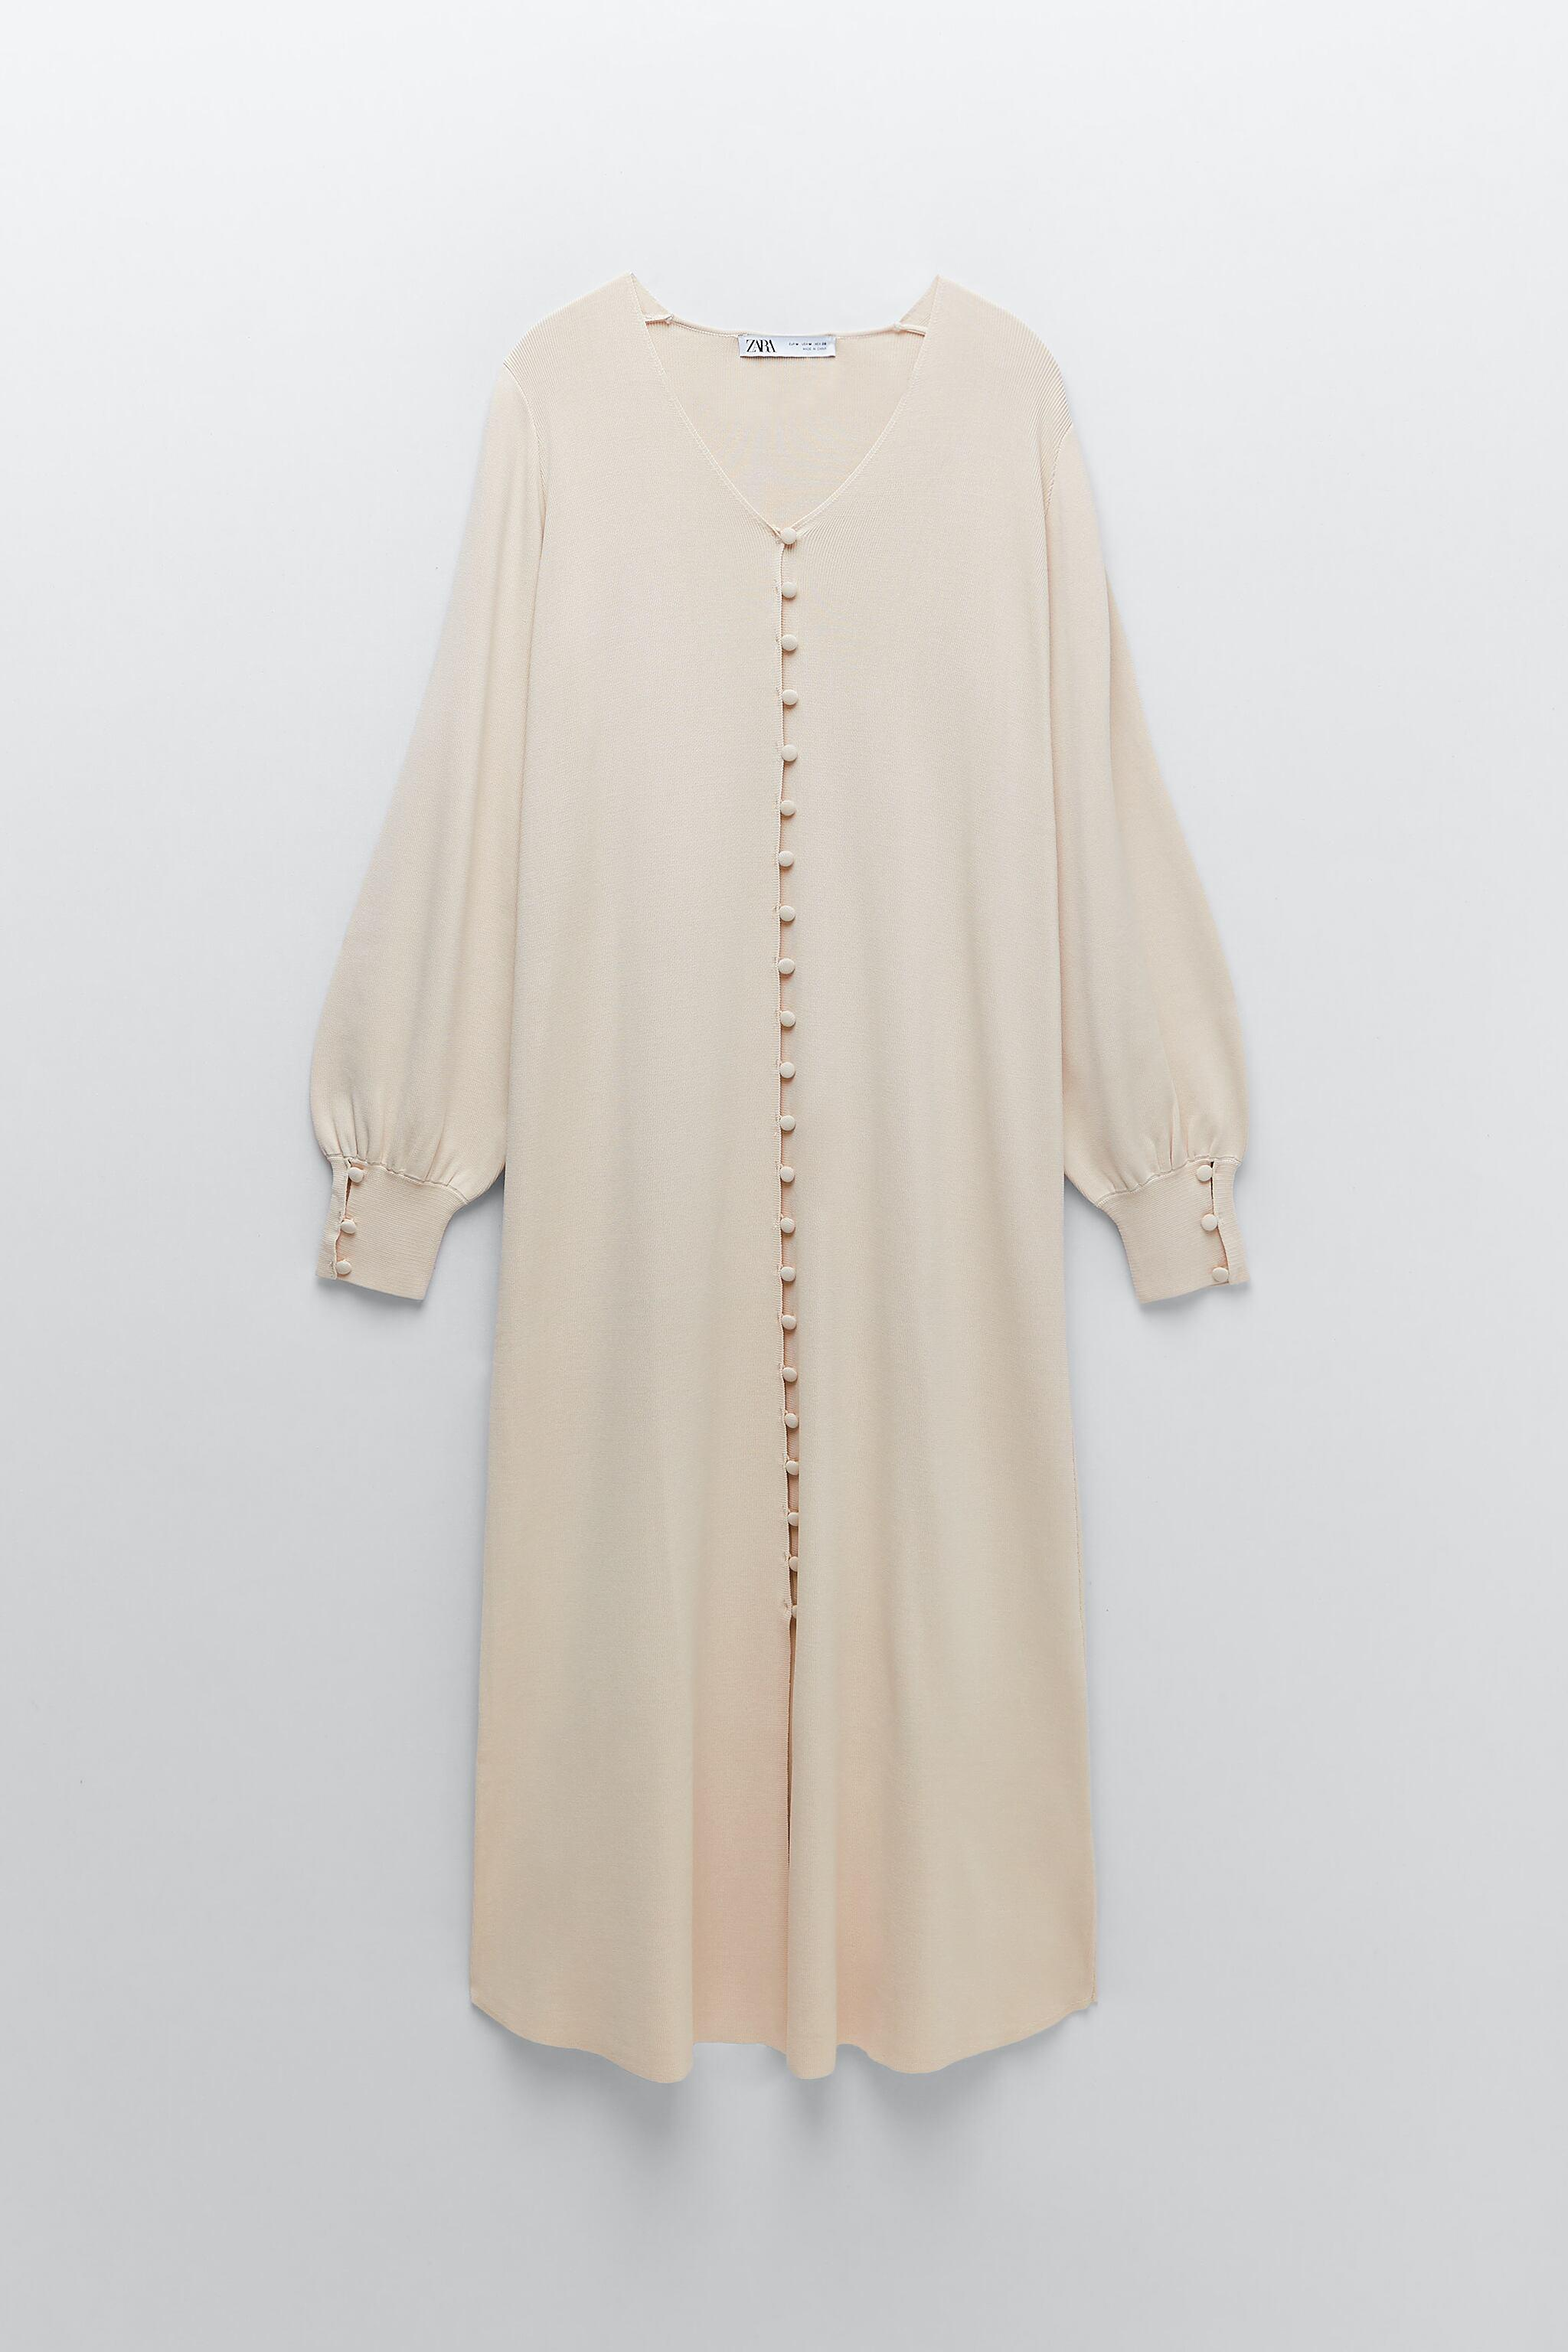 LIMITED EDITION BUTTONED KNIT DRESS 8